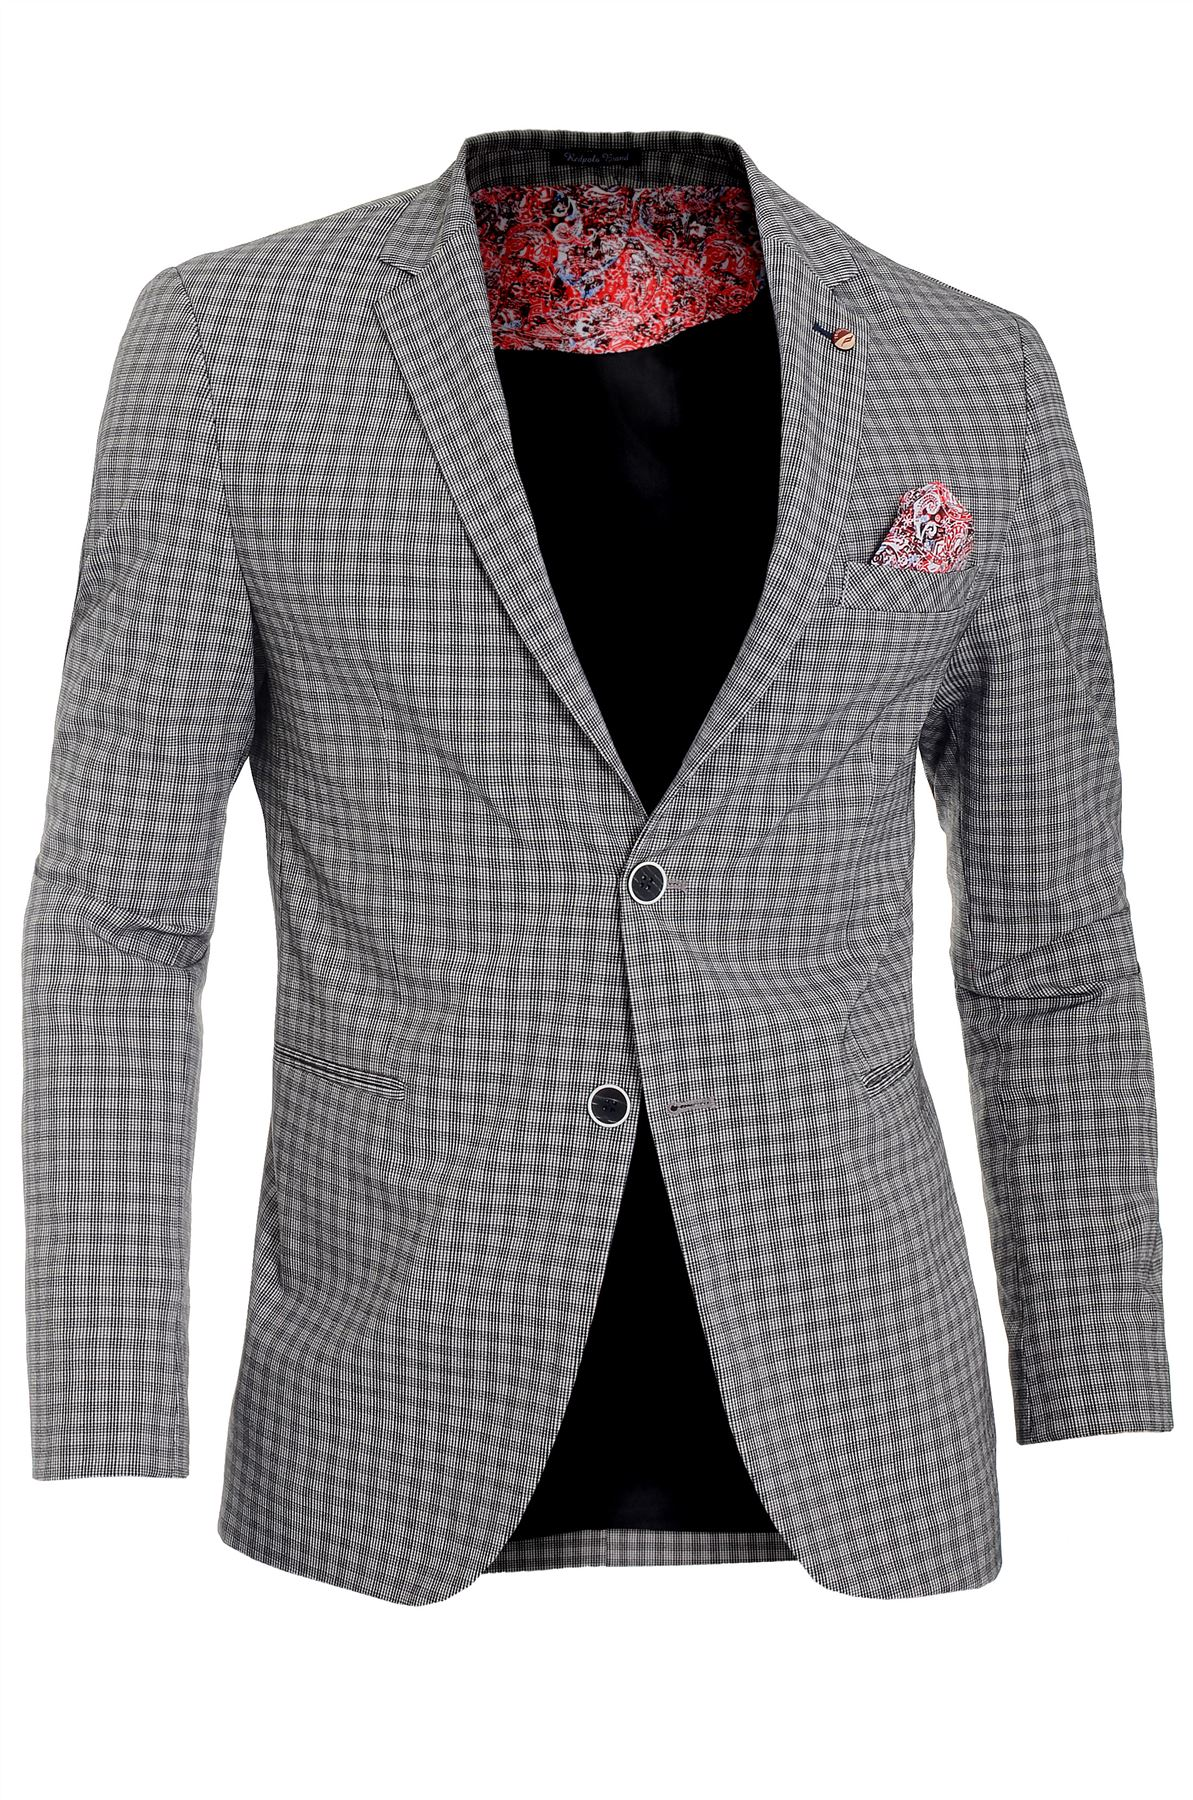 Mens-Checkered-Blazer-Jacket-Formal-Blue-Brown-Paisley-Finish-Cotton-Regular-Fit thumbnail 17